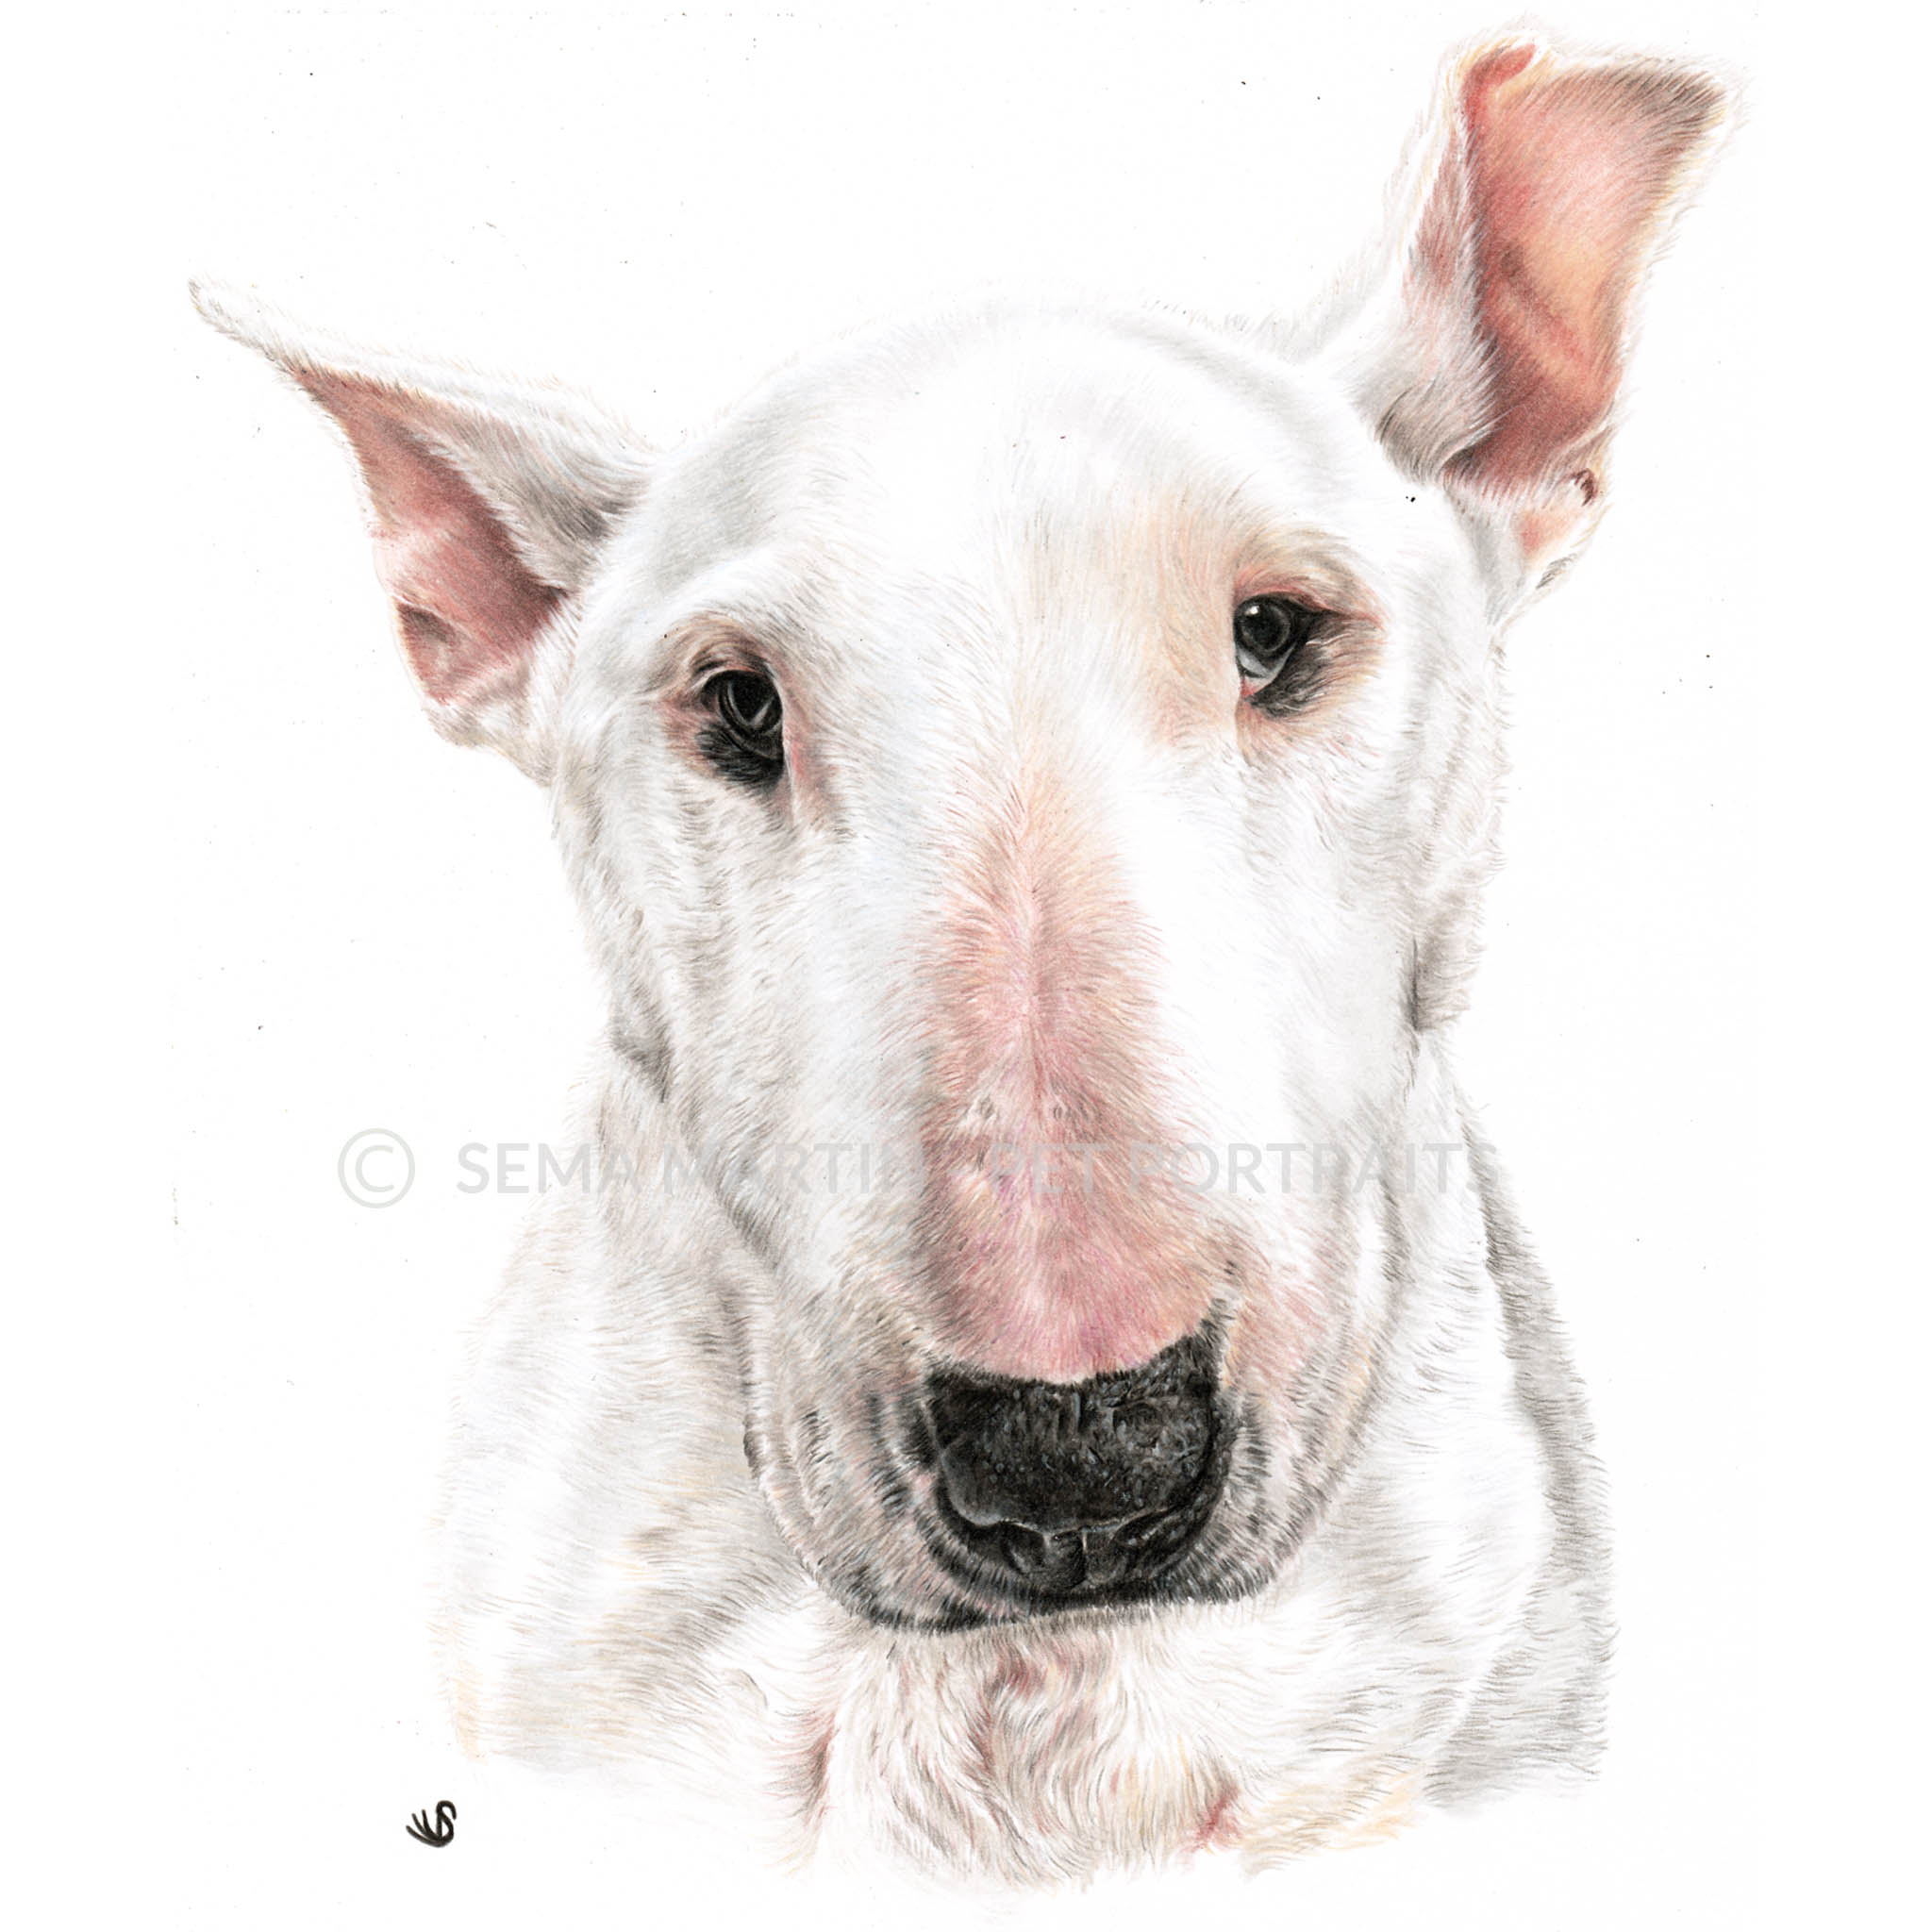 'Babbers' - UK, 8.3 x 11.7 inches, 2019, Colour Pencil Portrait of a Bull Terrier